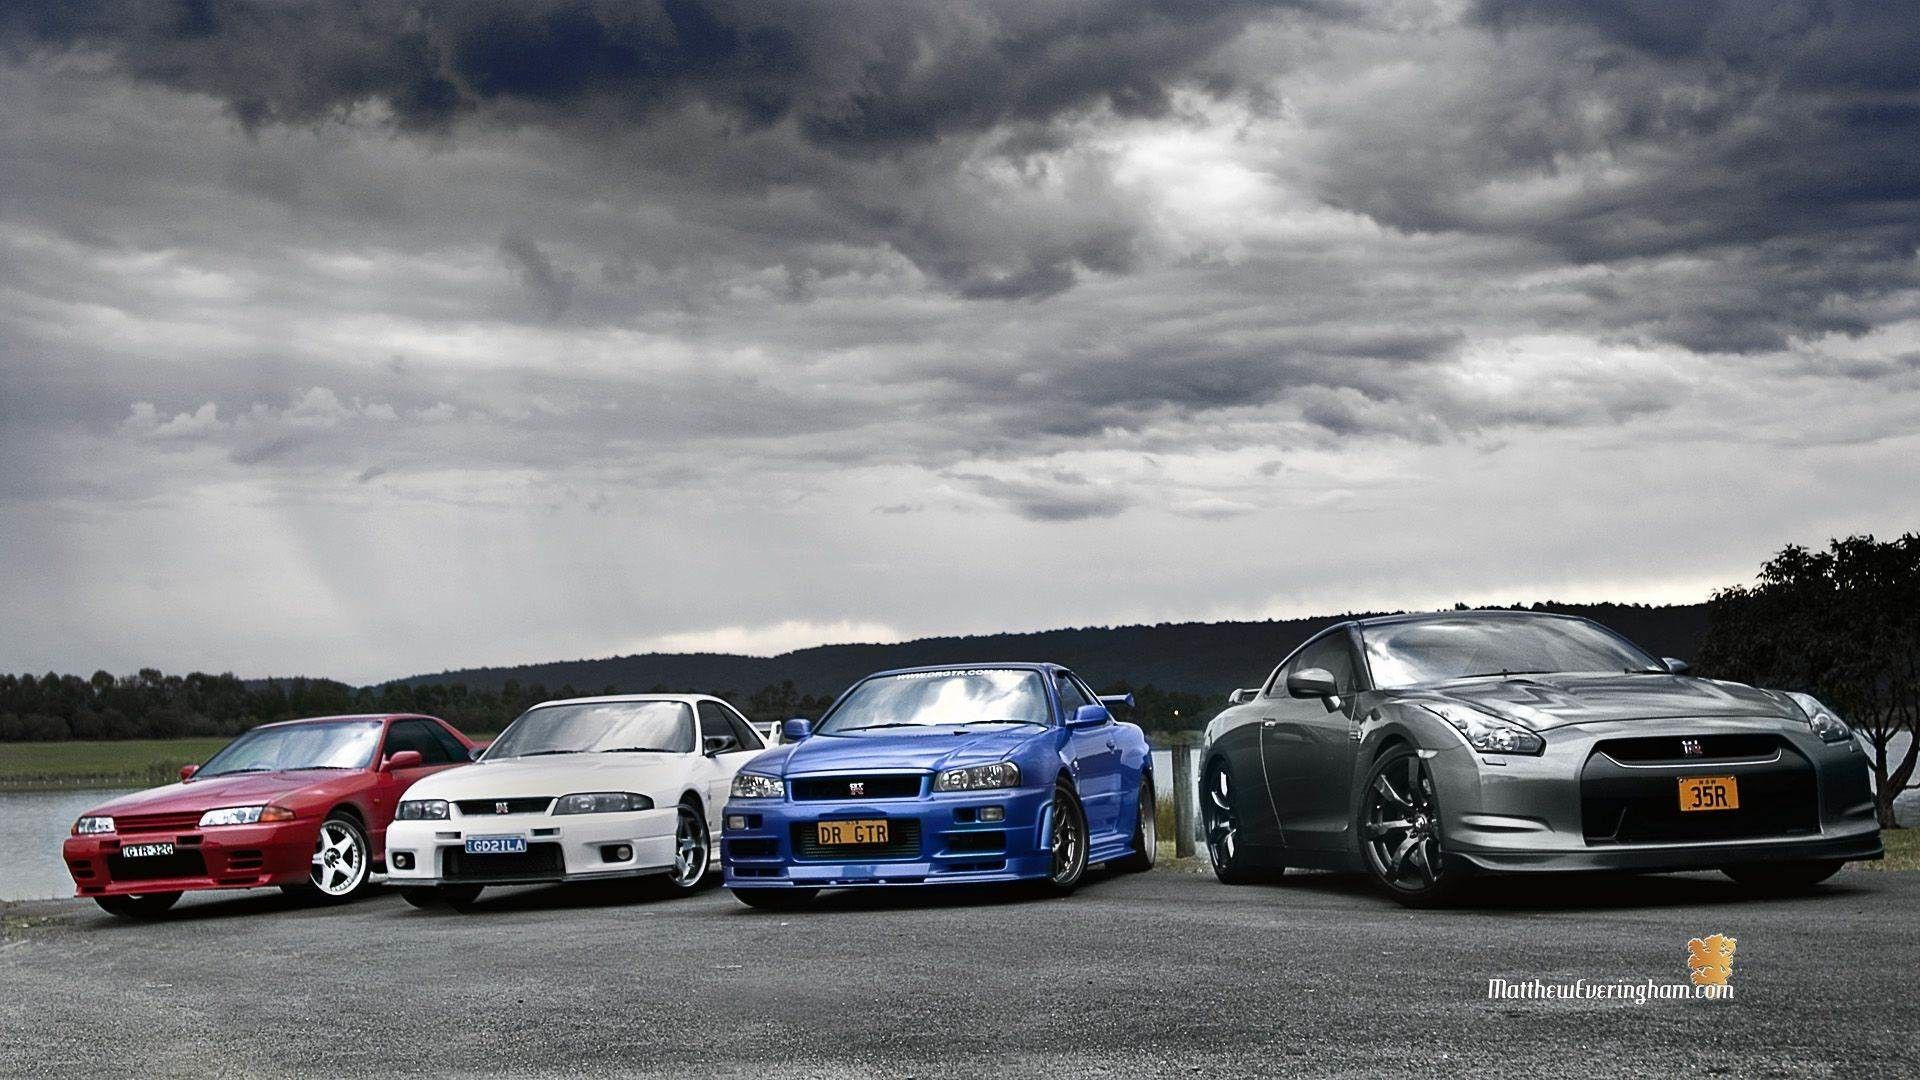 Res 1920x1080 Nissan Skyline Gtr R34 Wallpapers Wallpaper